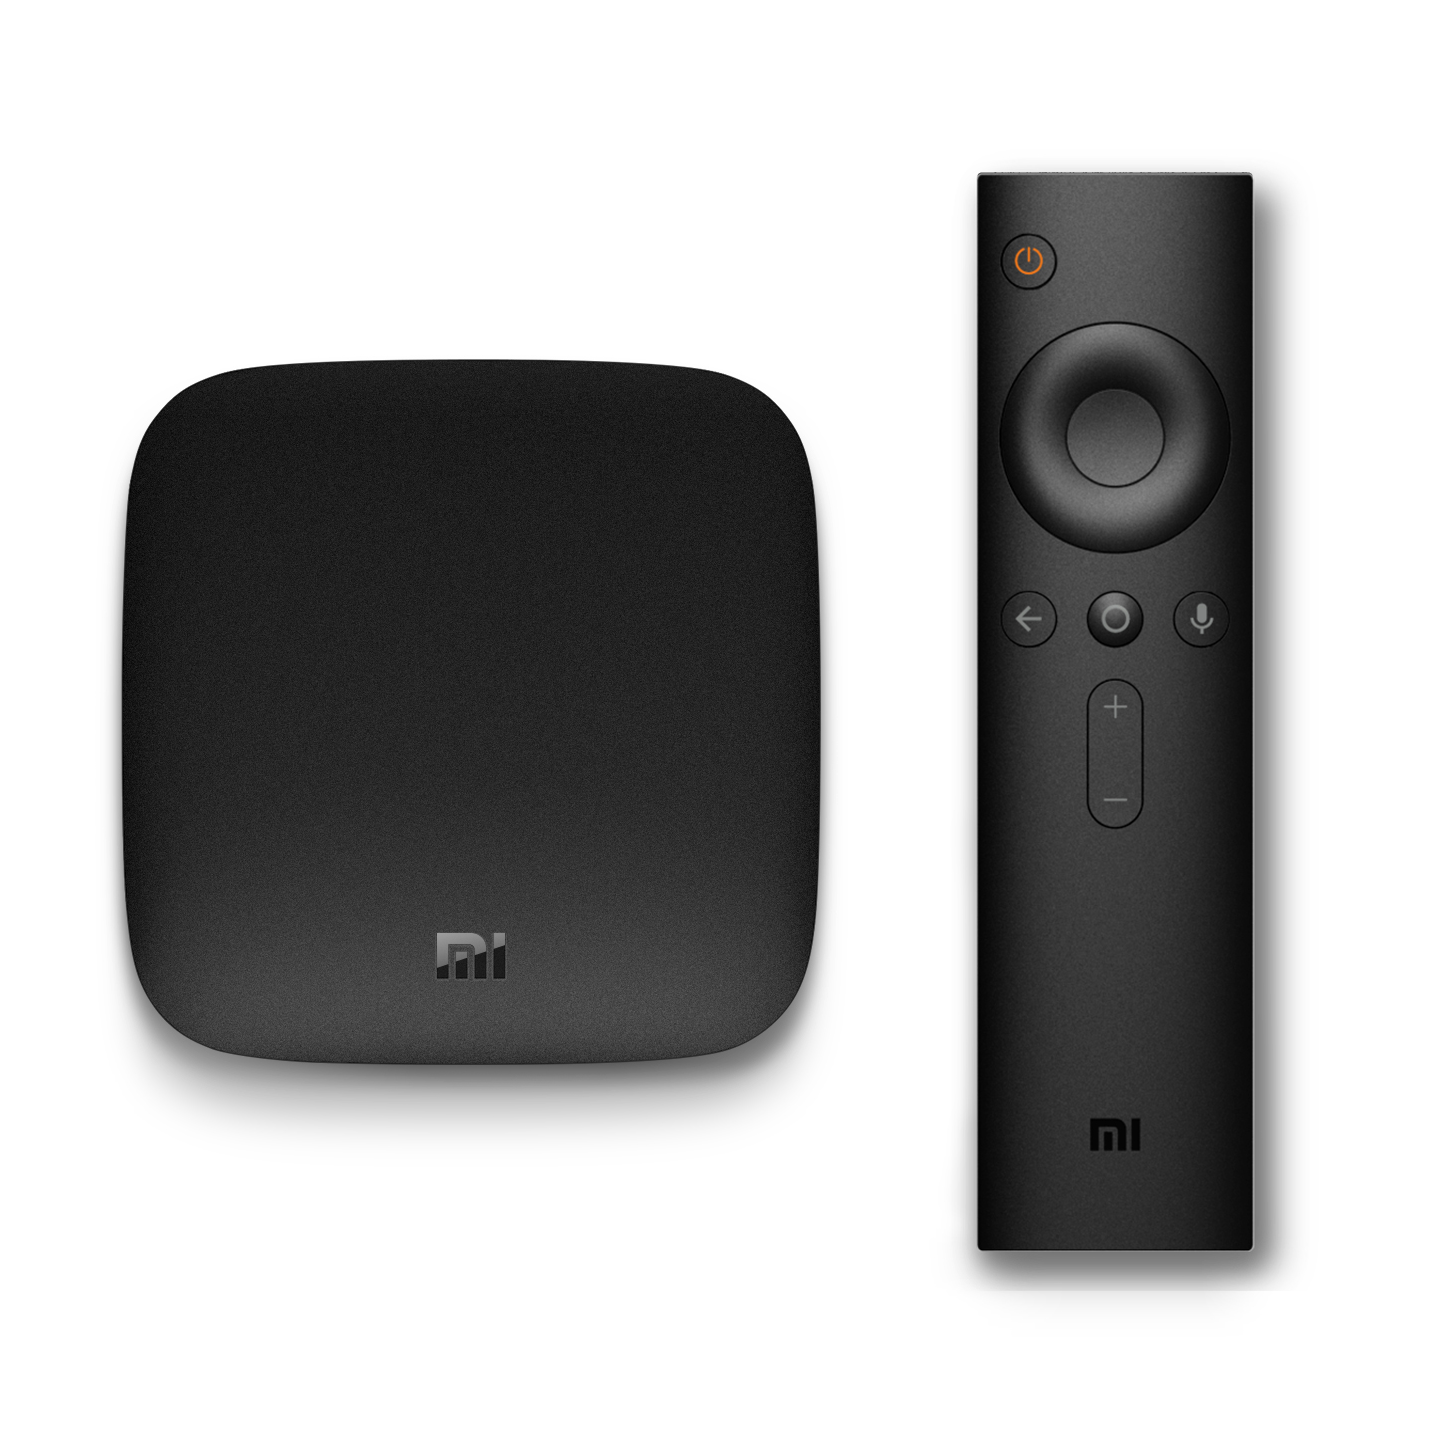 Xiaomi Mi Box 3 Android TV 4K set-top box (EU) - www.itfroccs.hu